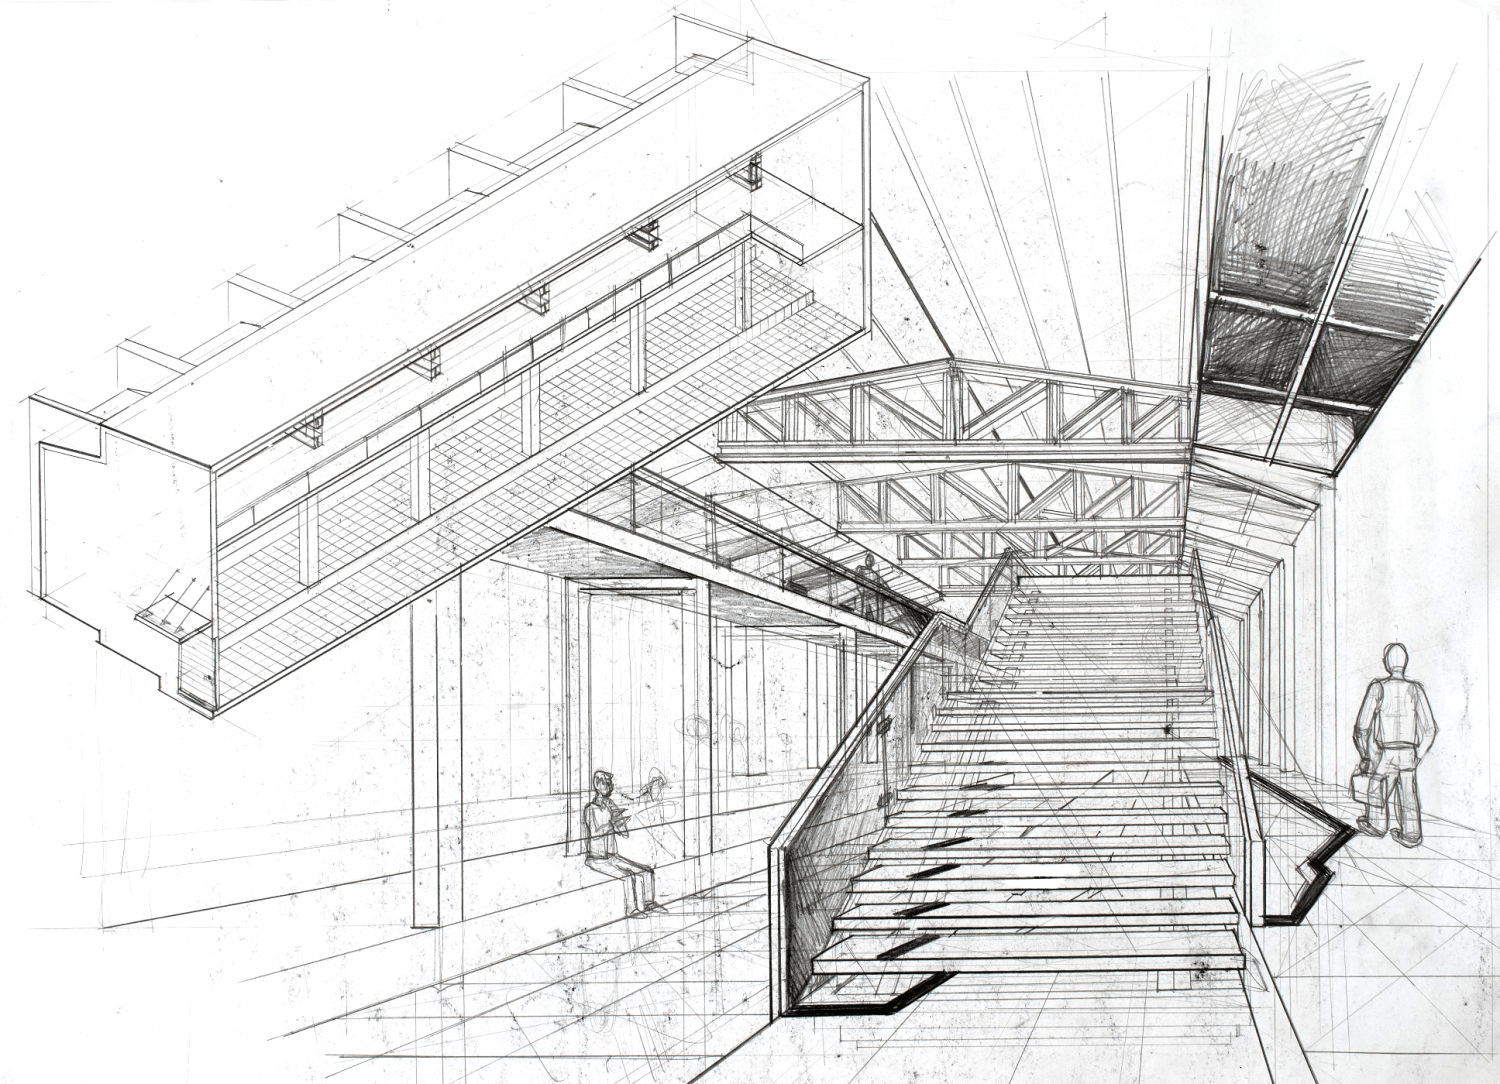 Interior Perspective Architectural Drawing